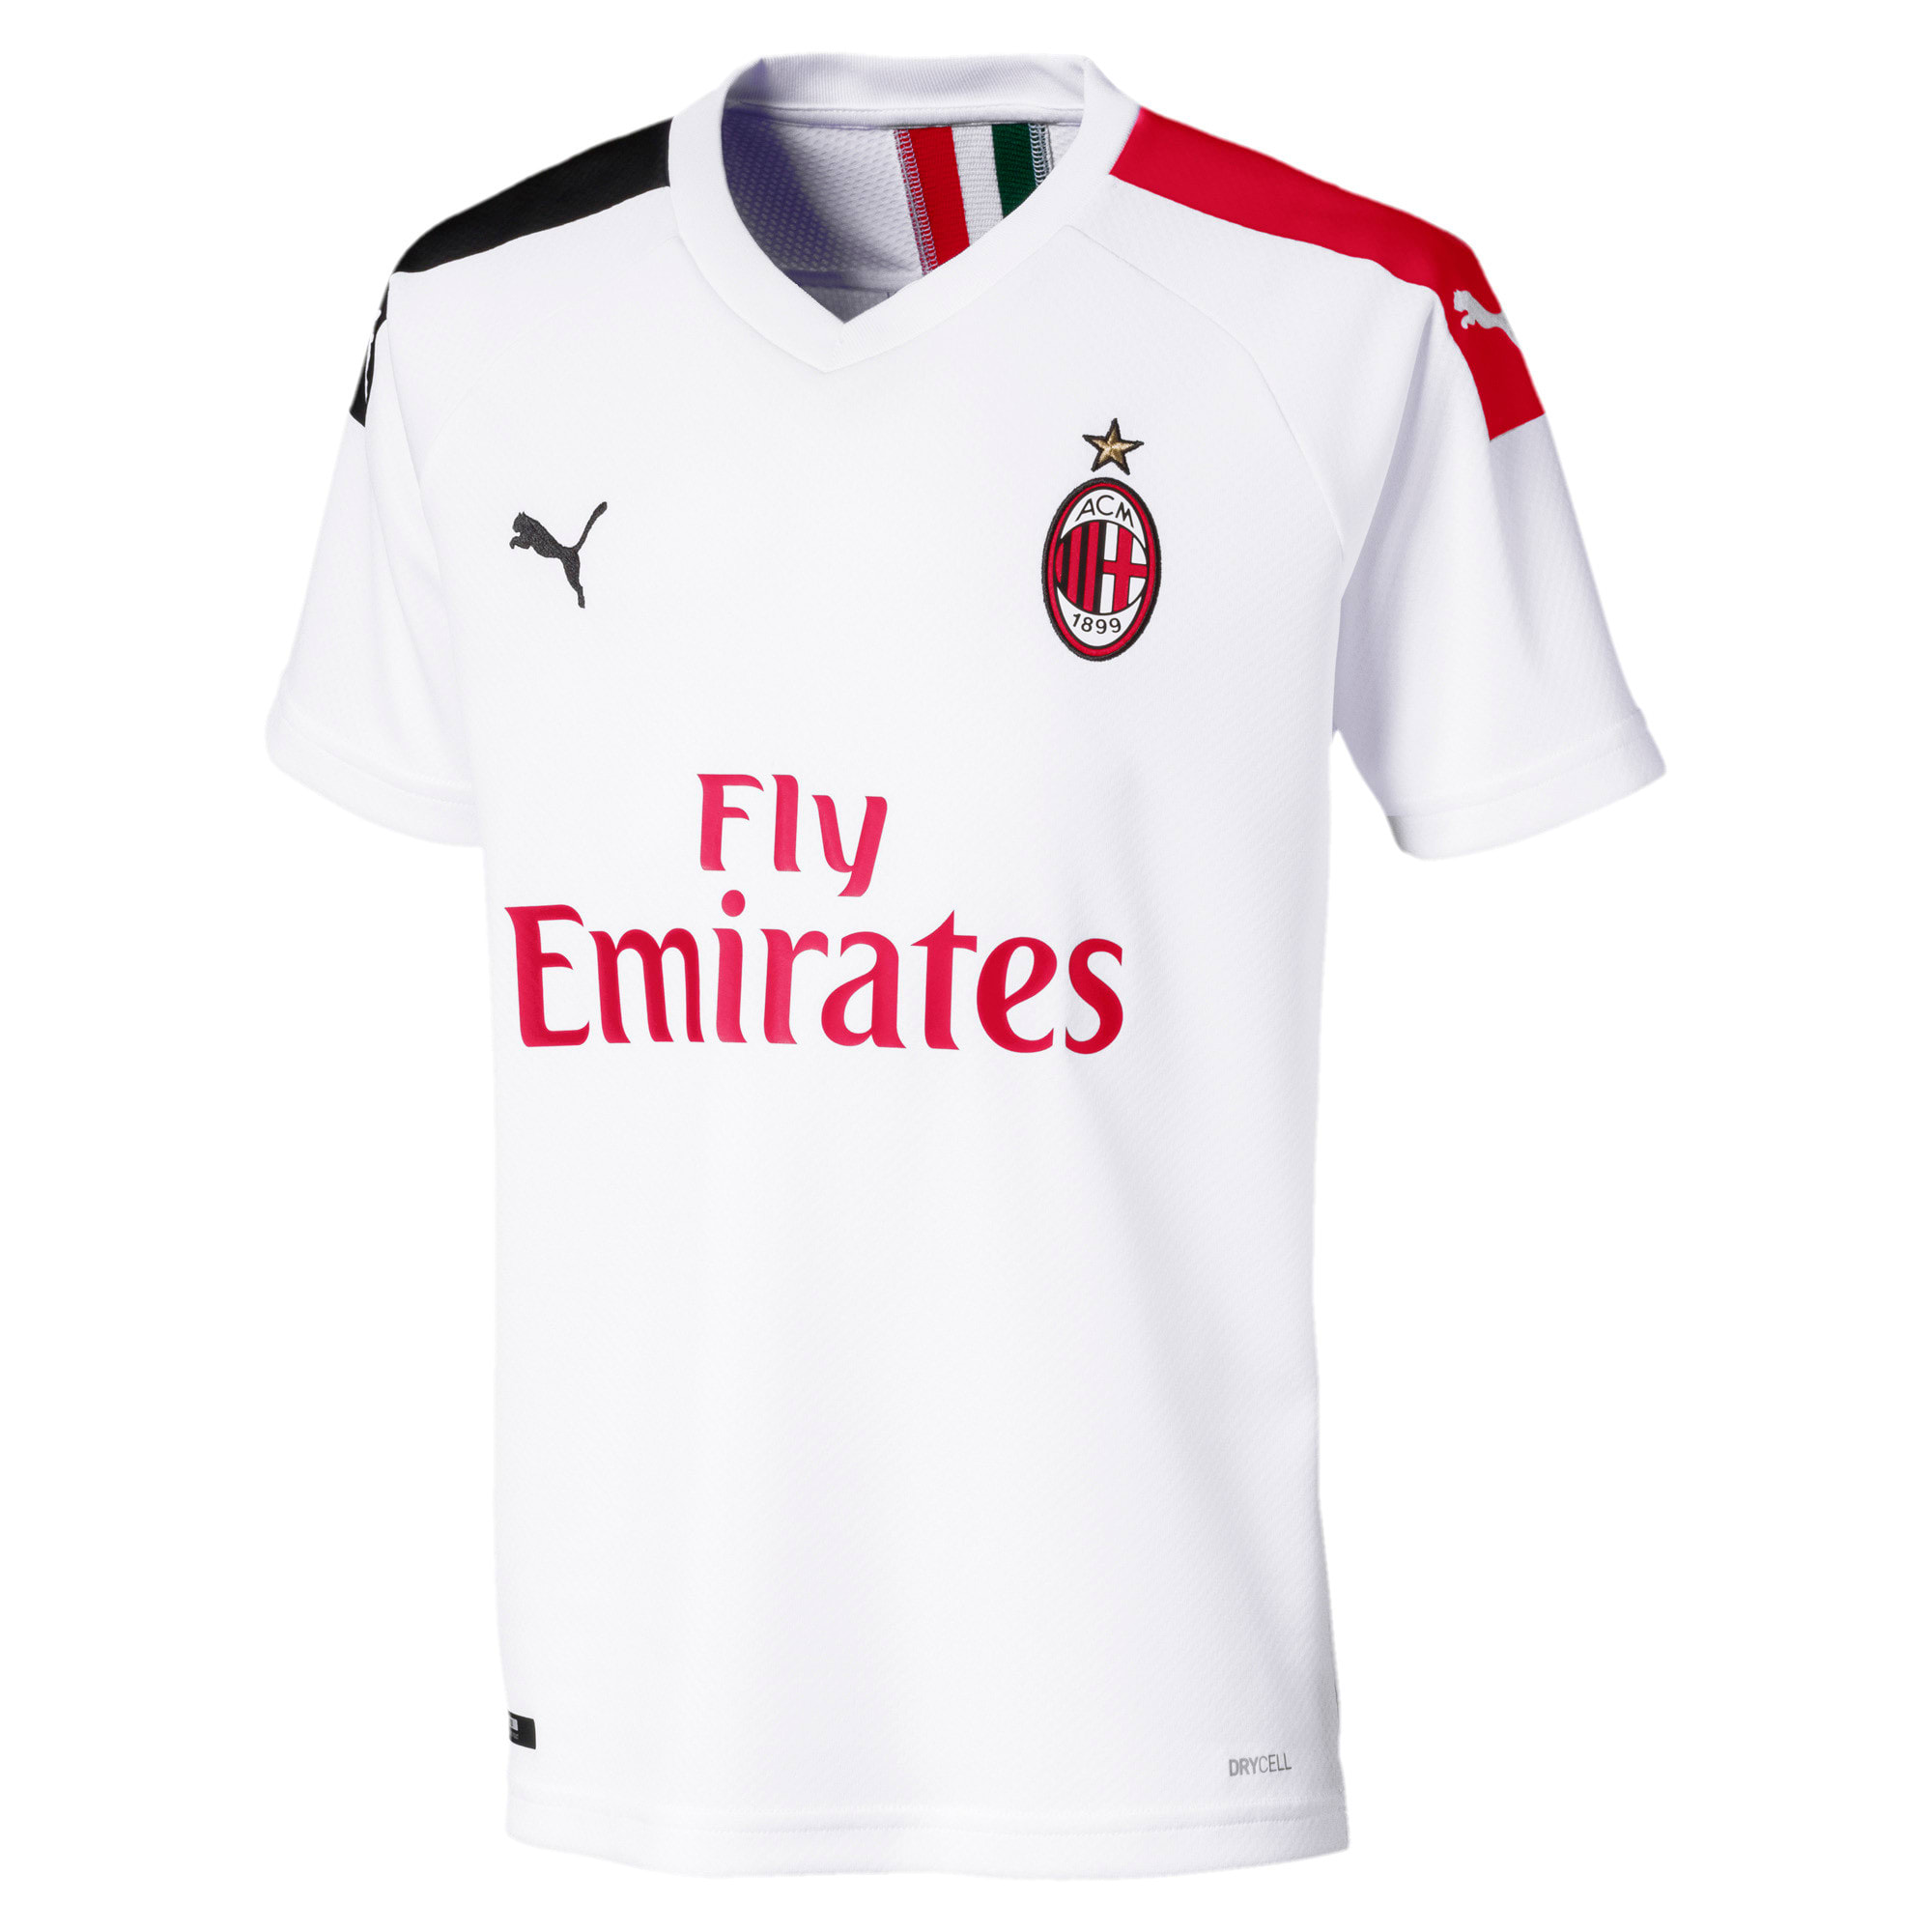 Thumbnail 1 of AC Milan Away Replica Kids' Jersey, Puma White-Tango Red, medium